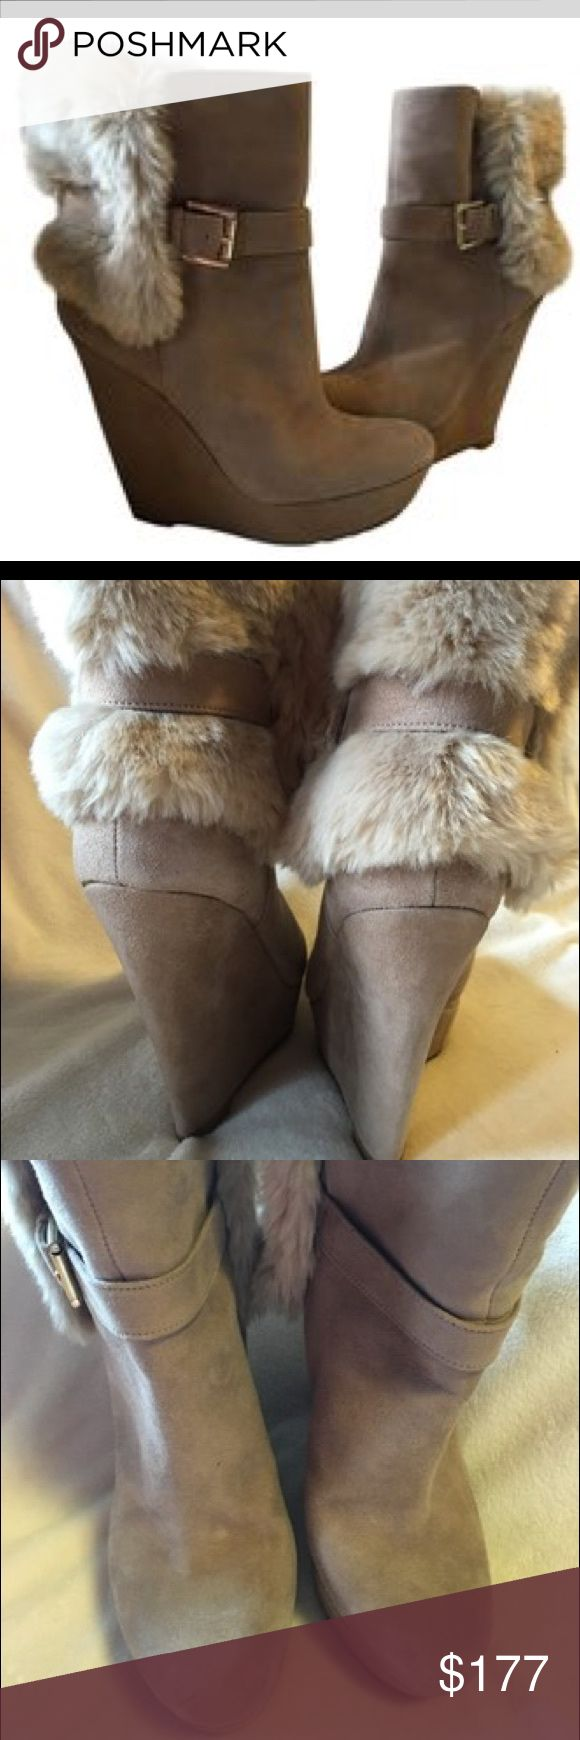 Nine West suede platform faux fur adj gold buckle Stunning platform suede leather with faux fur, adjustable gold buckles, beautiful! Never worn Nine West Shoes Ankle Boots & Booties